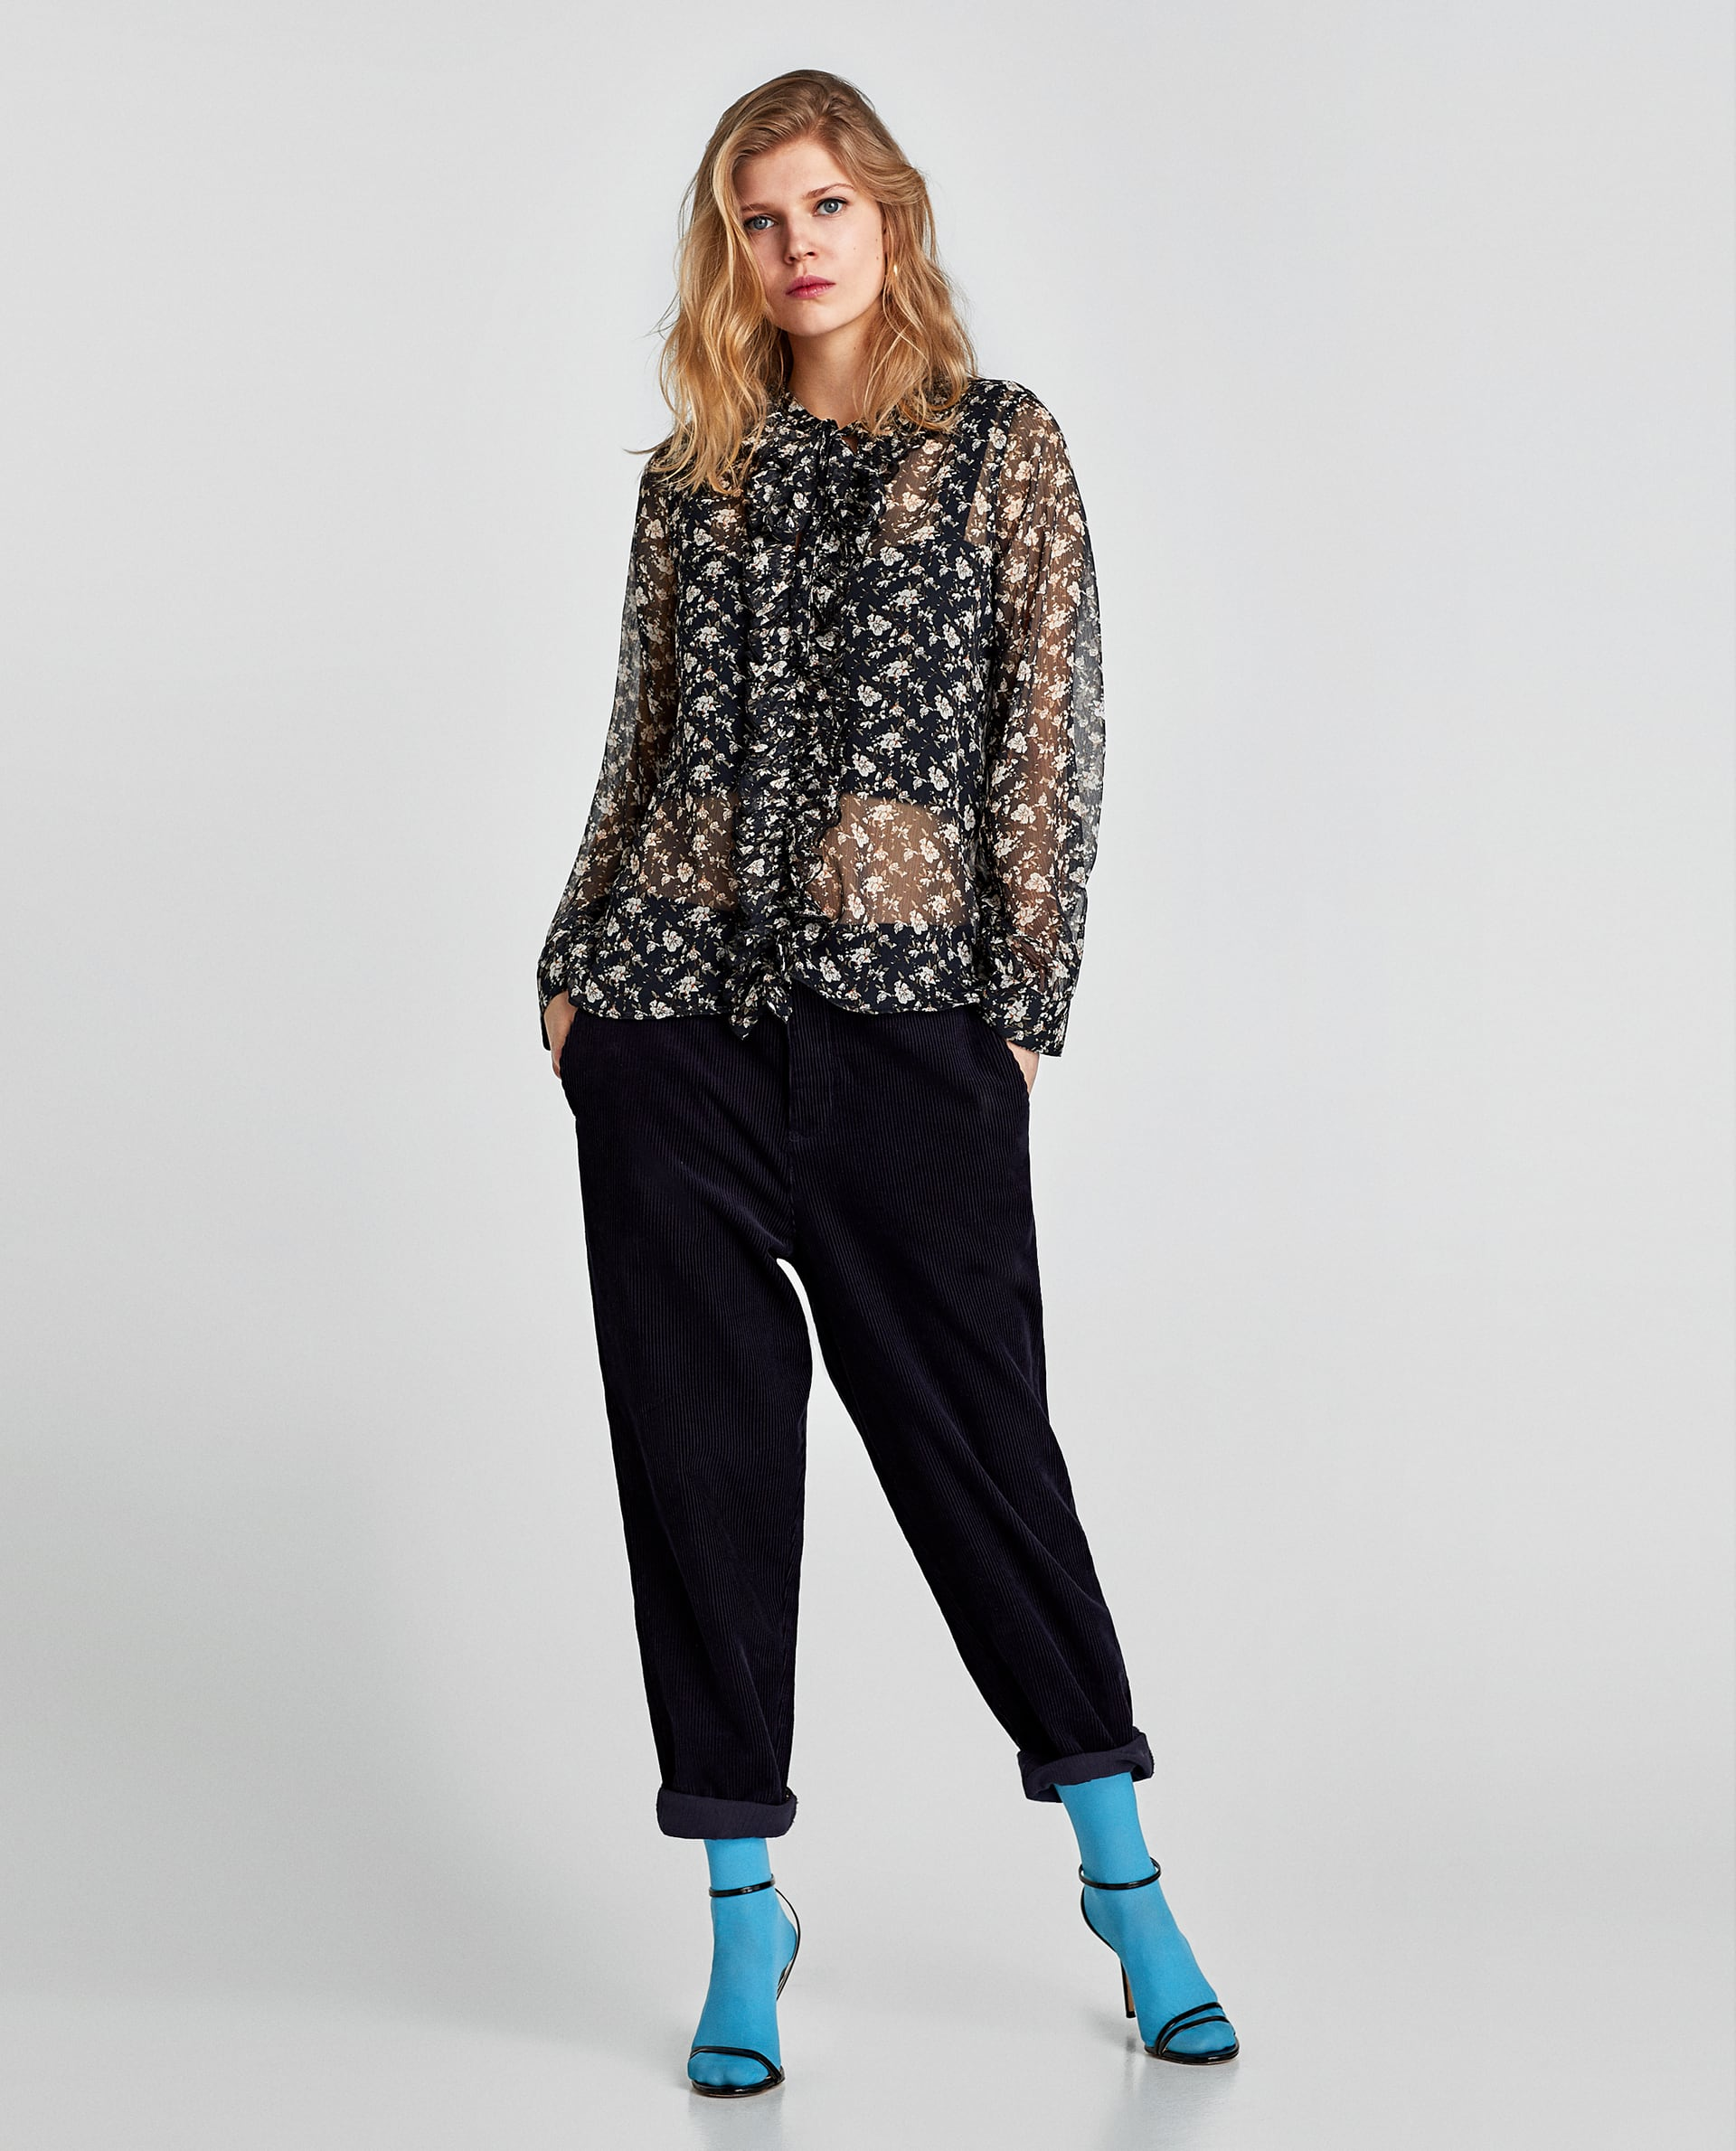 Shop this ZARA Floral Shirt for only $12,99